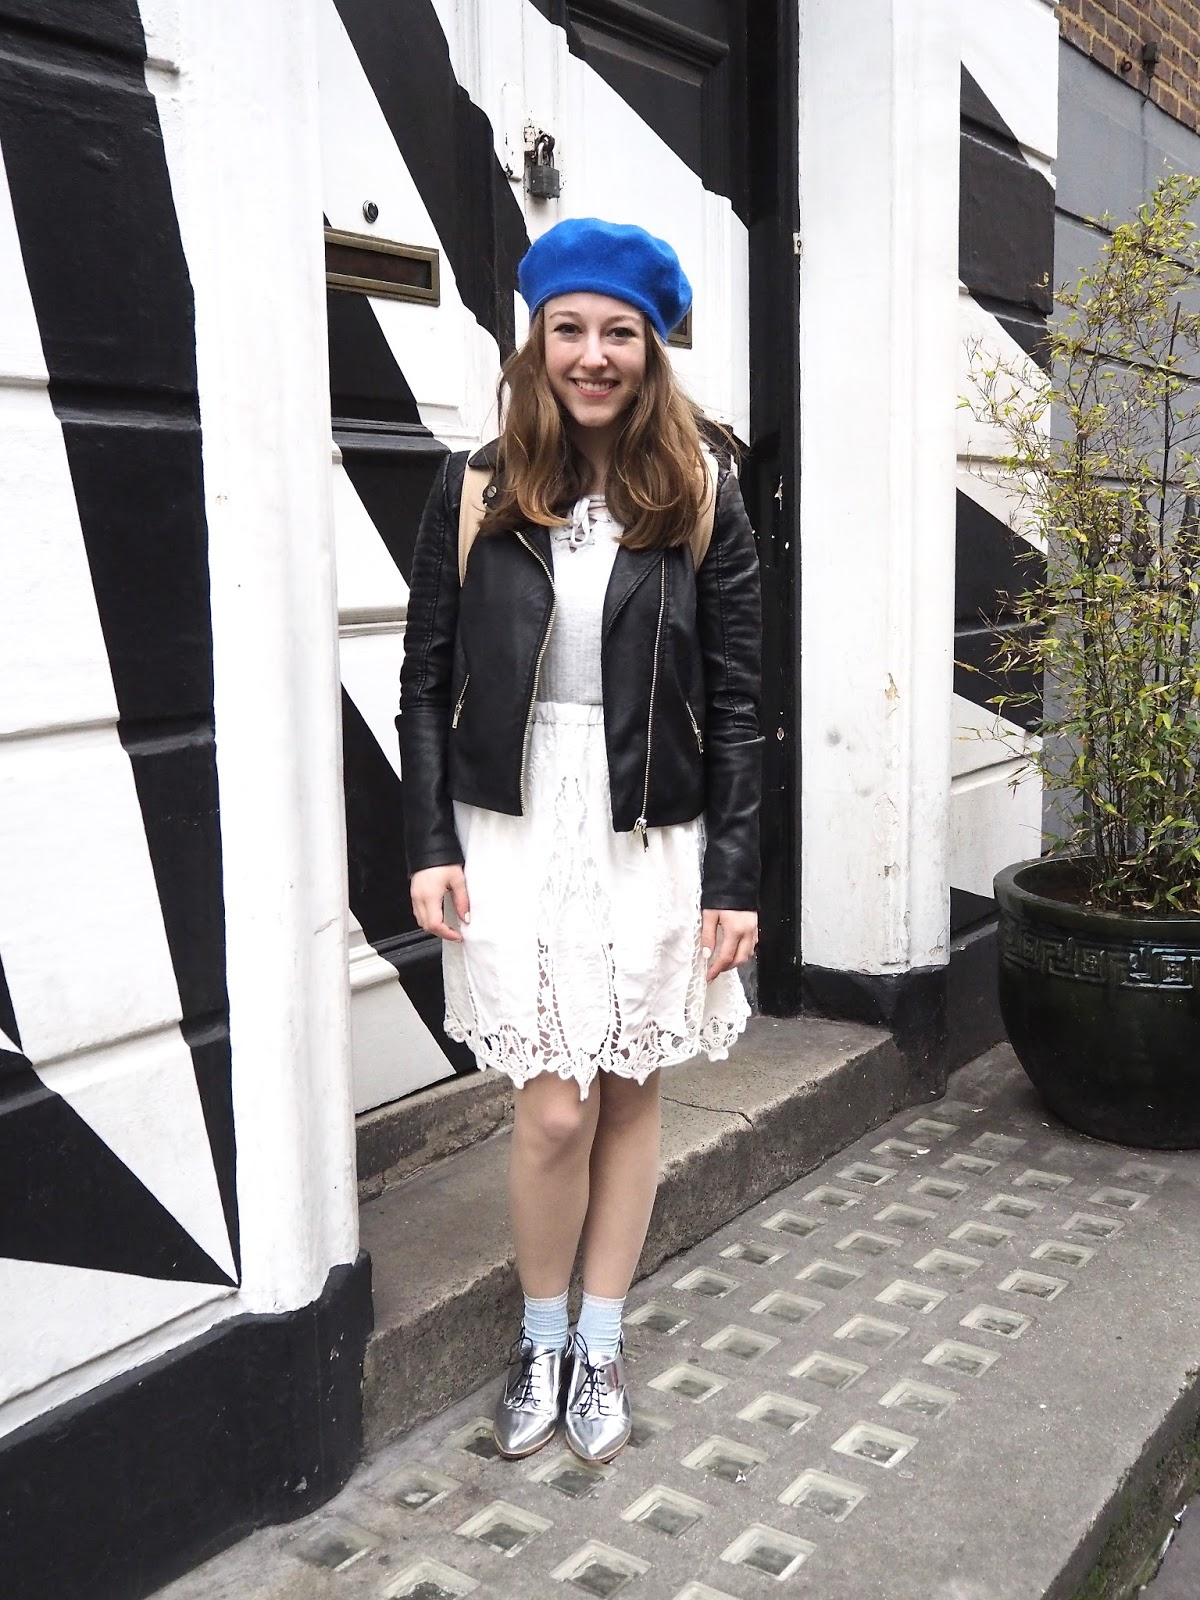 London Fashion Week outfit